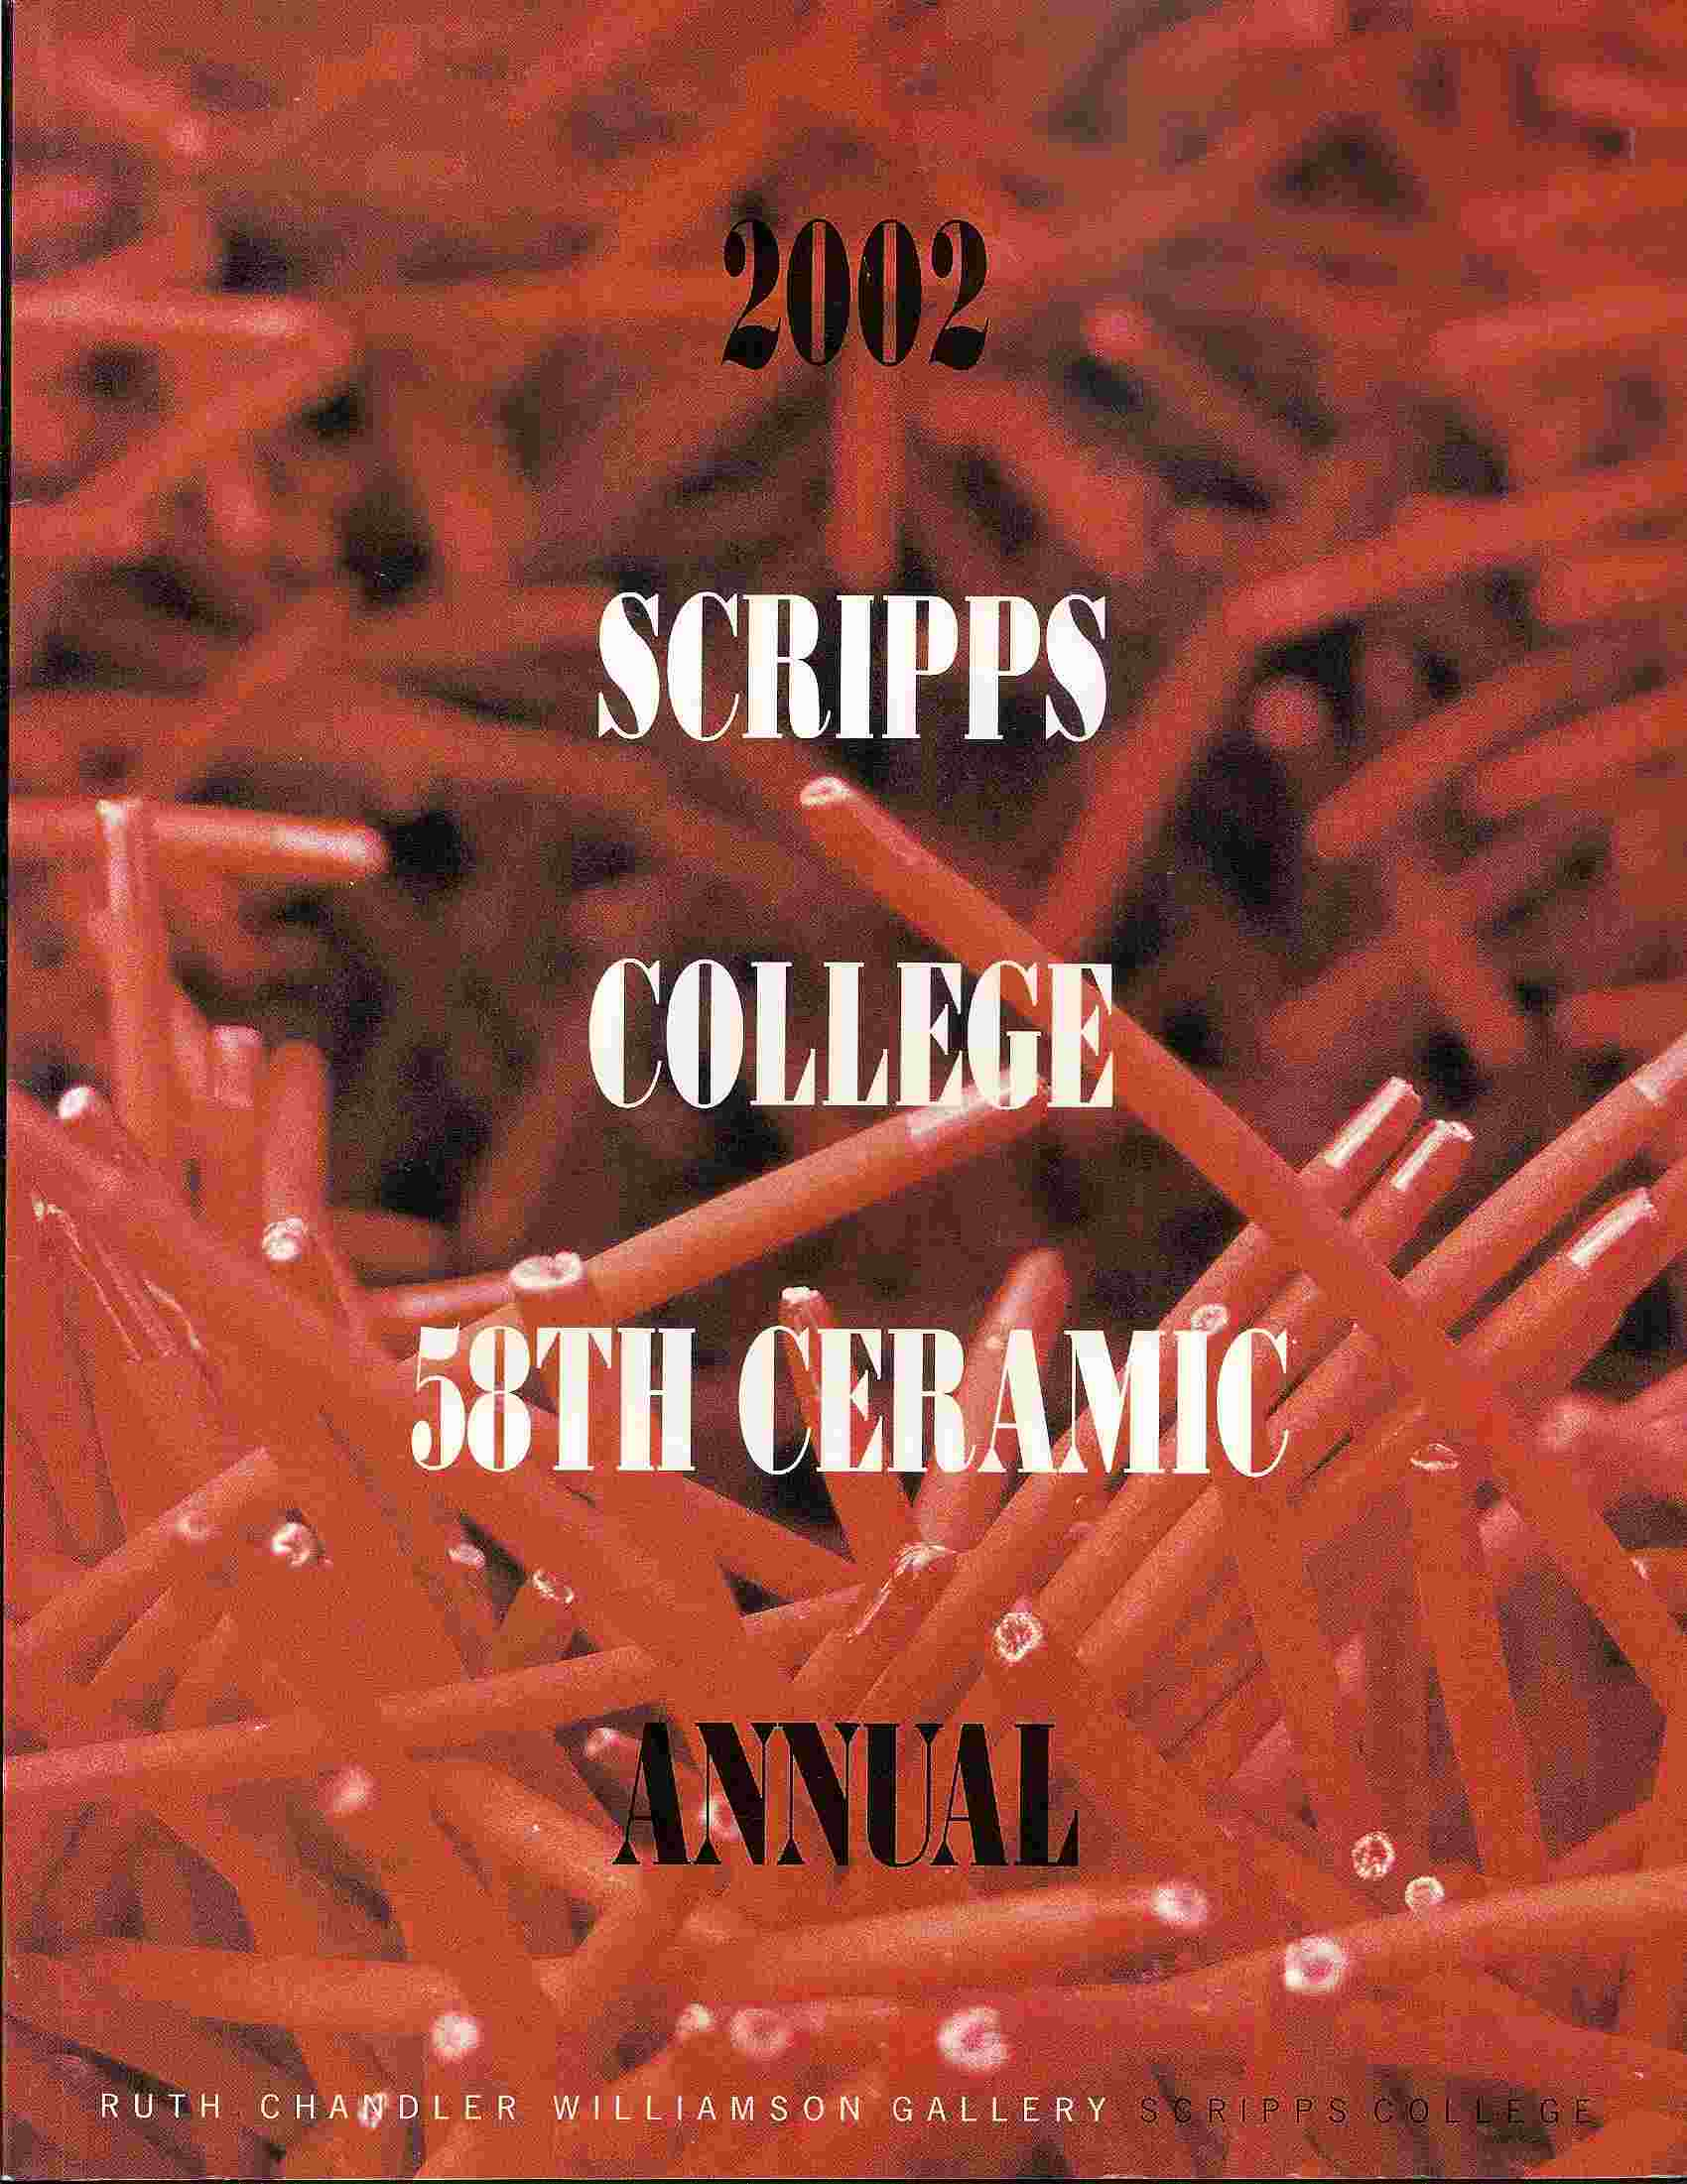 Image for 58th Annual Invitational Ceramic Exhibition; 2002 CERAMIC ANNUAL